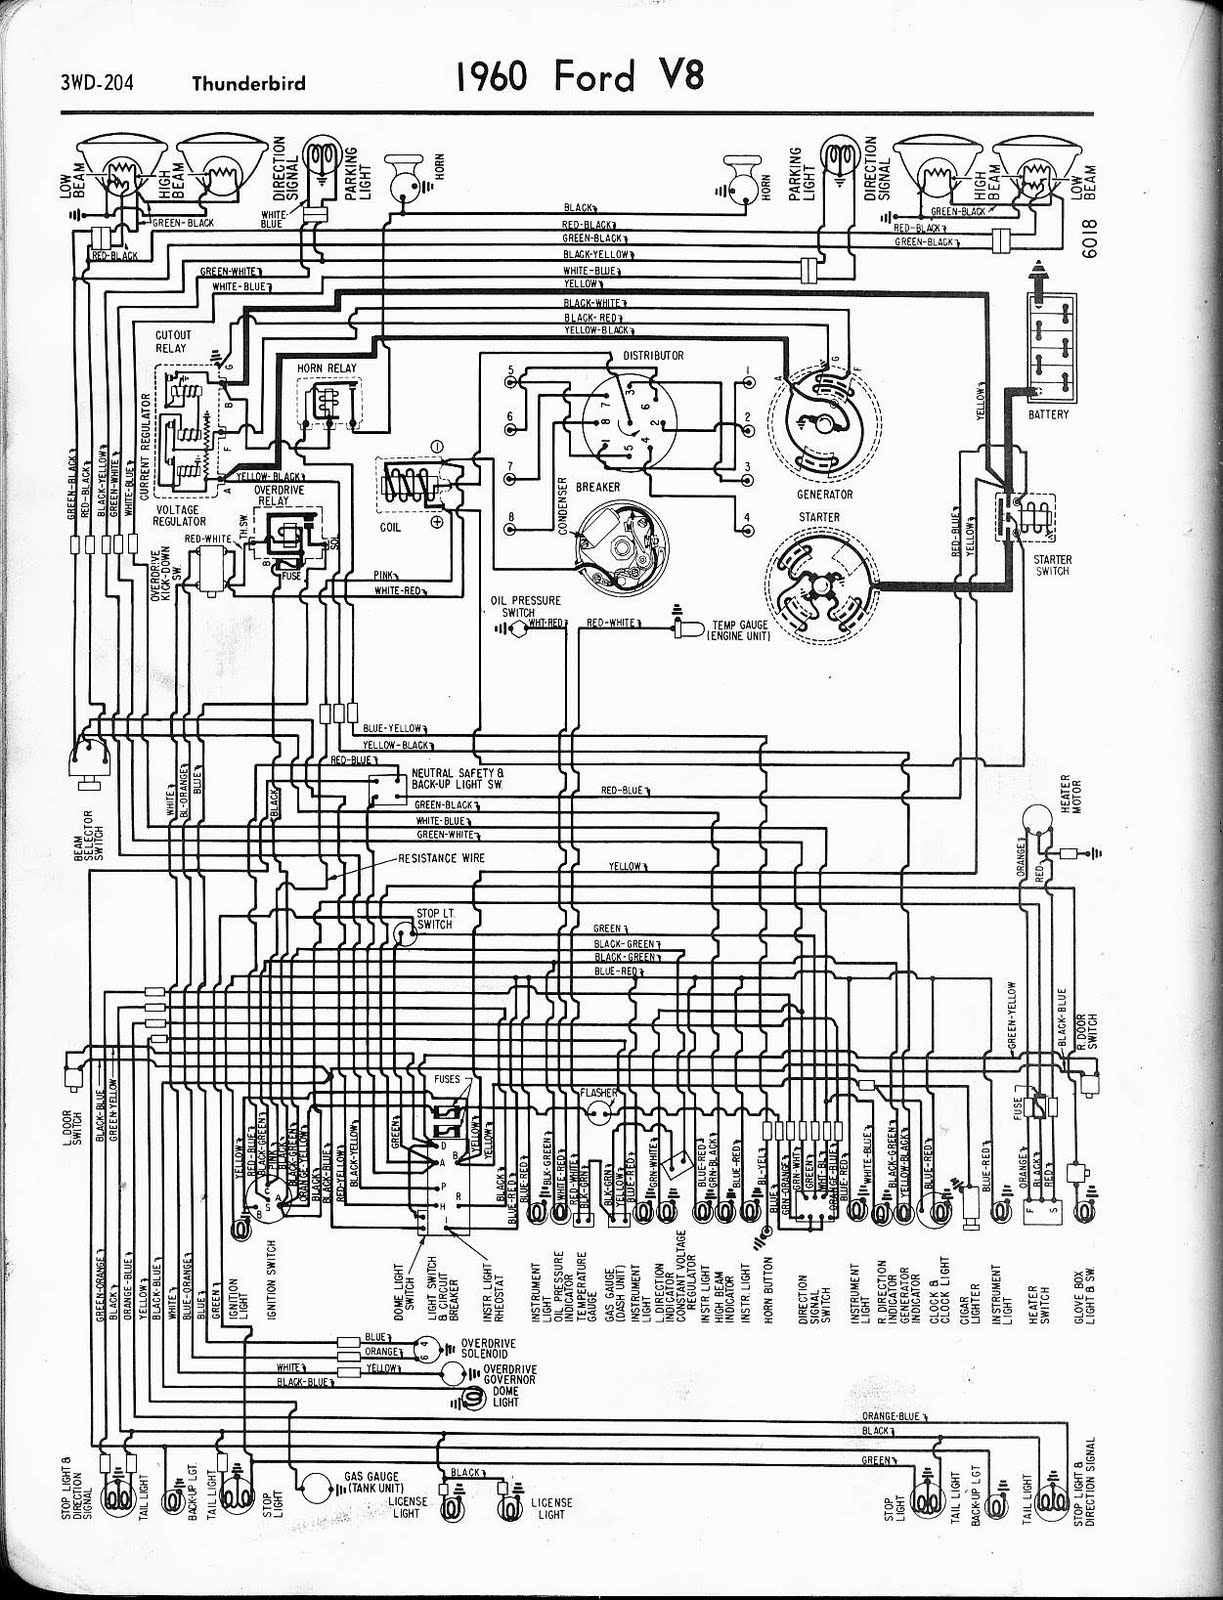 free auto wiring diagram 1960 ford v8 thunderbird wiring diagram rh autowiringdiagram blogspot com 1995 Ford Thunderbird Wiring Diagram 1987 Ford Thunderbird Wiring Diagram